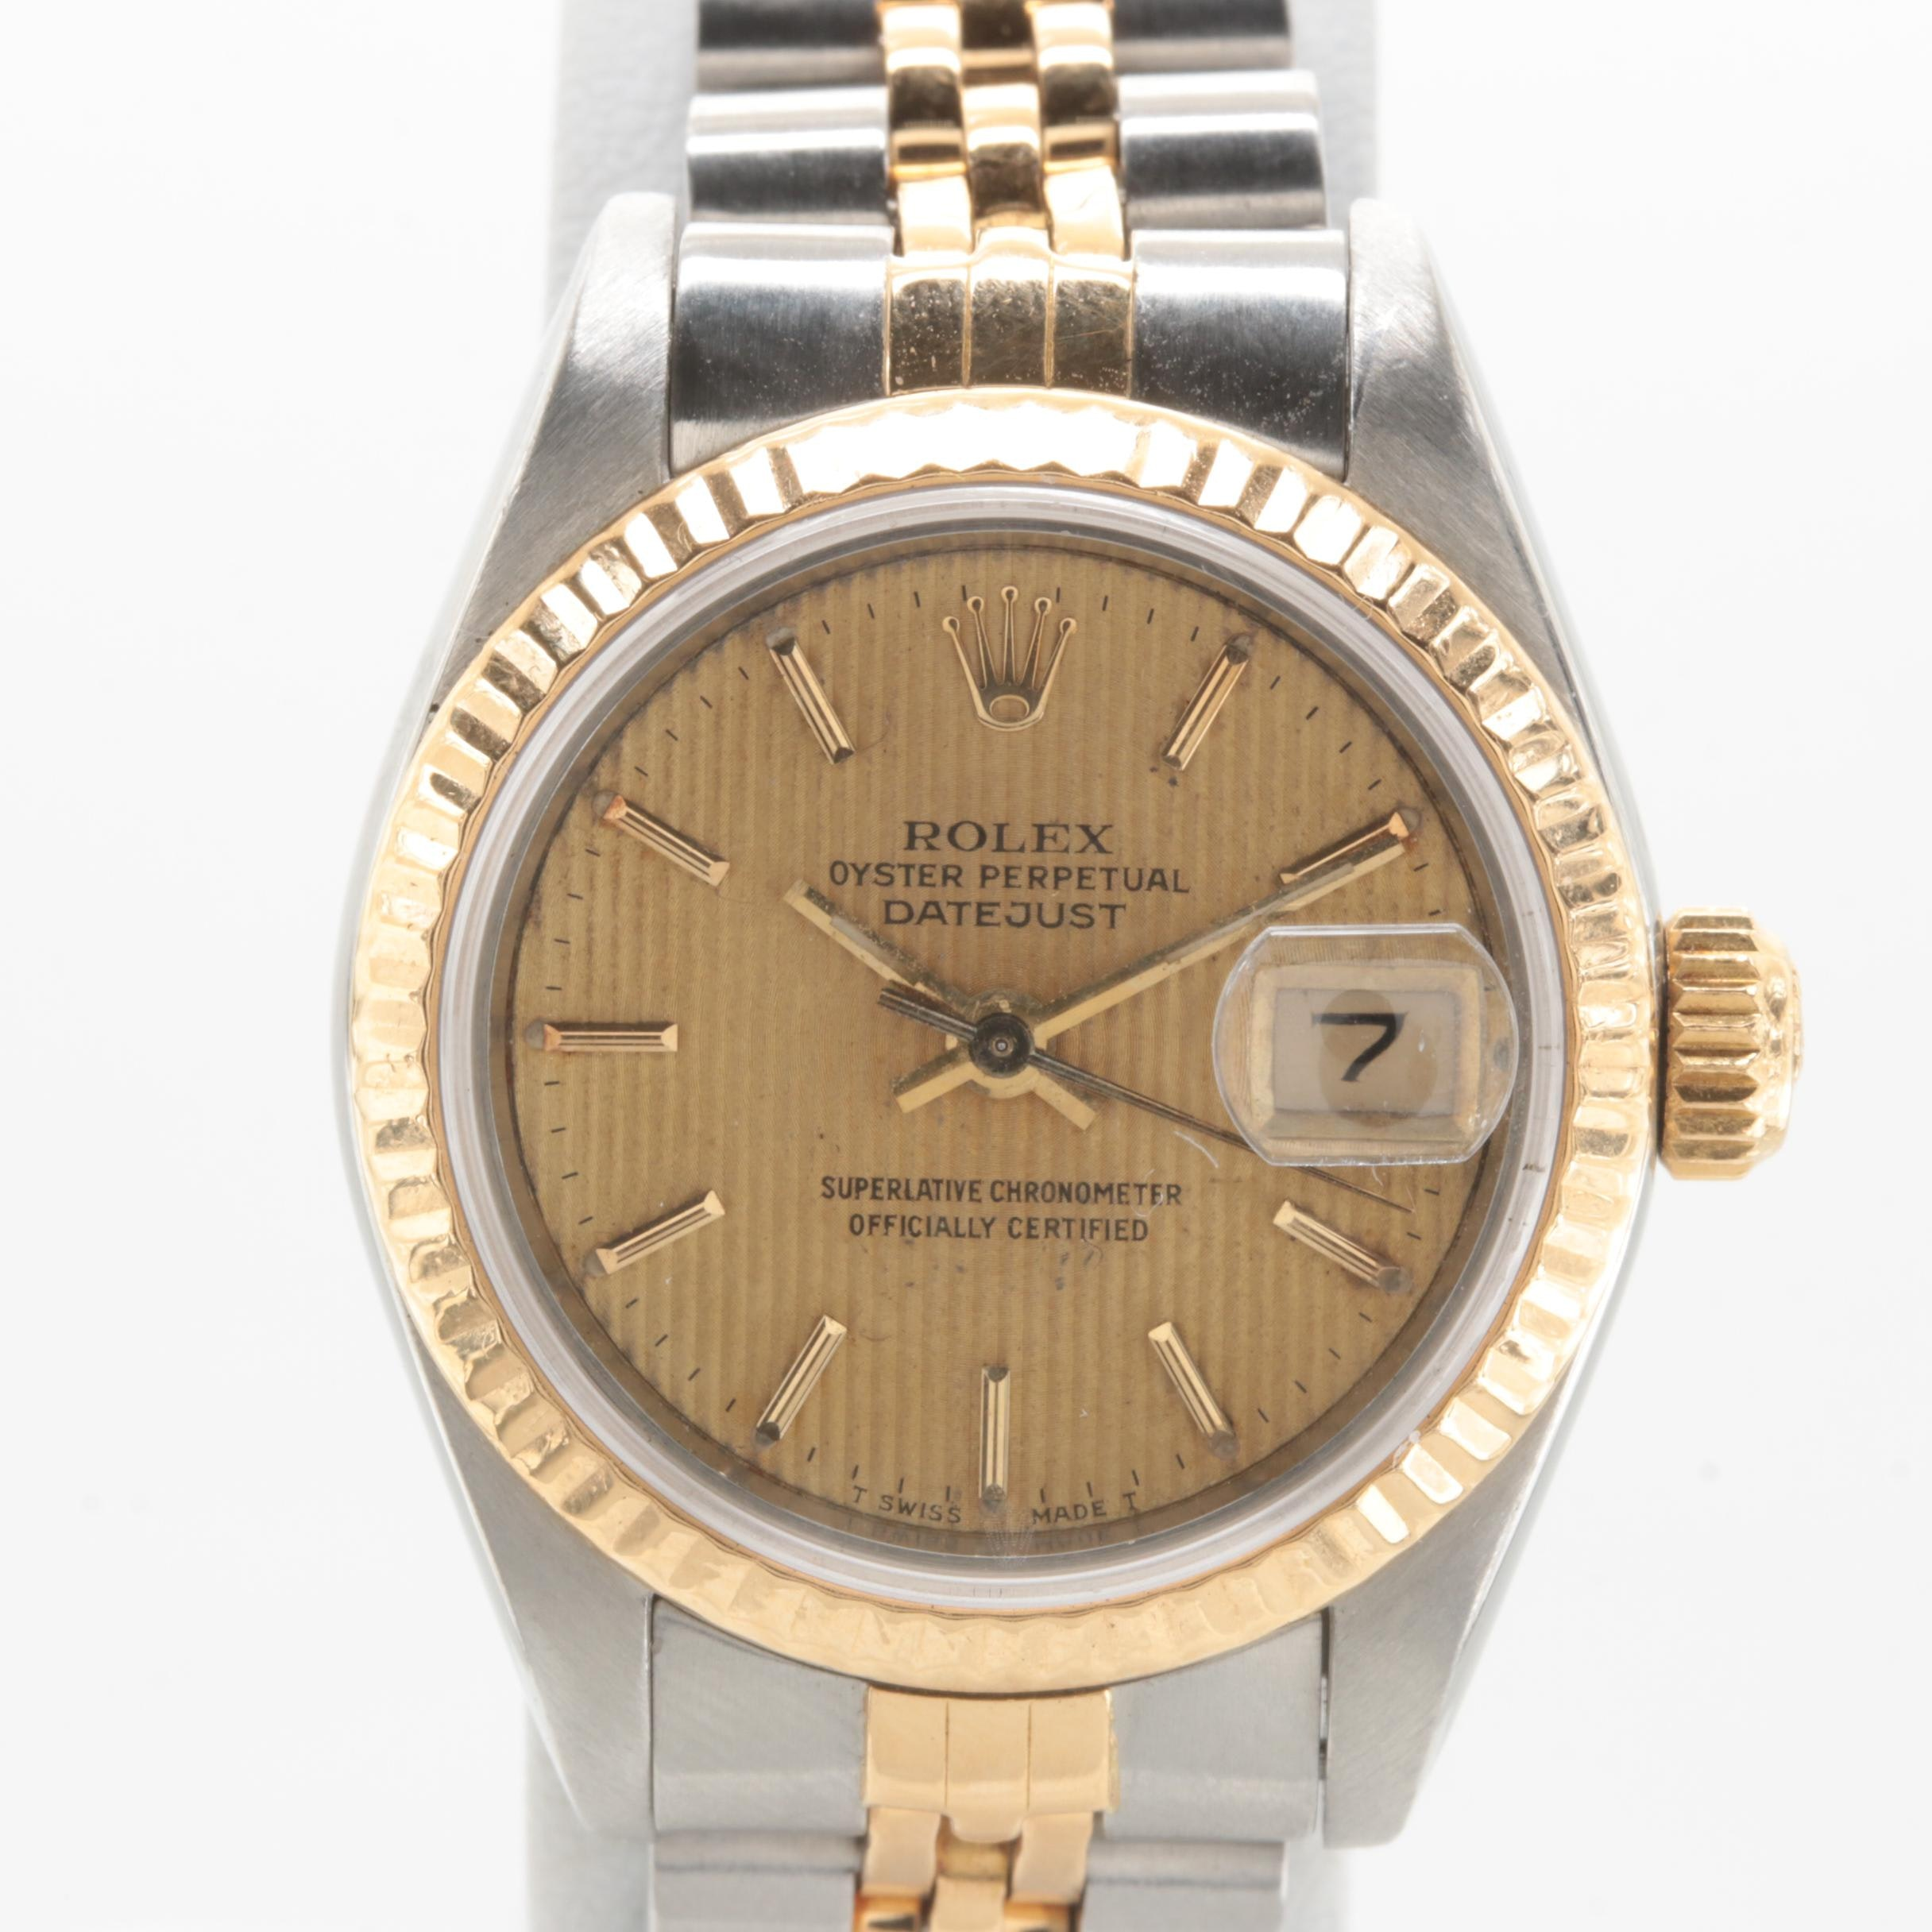 Circa 1990 Rolex Stainless Steel and 18K Yellow Gold Wristwatch